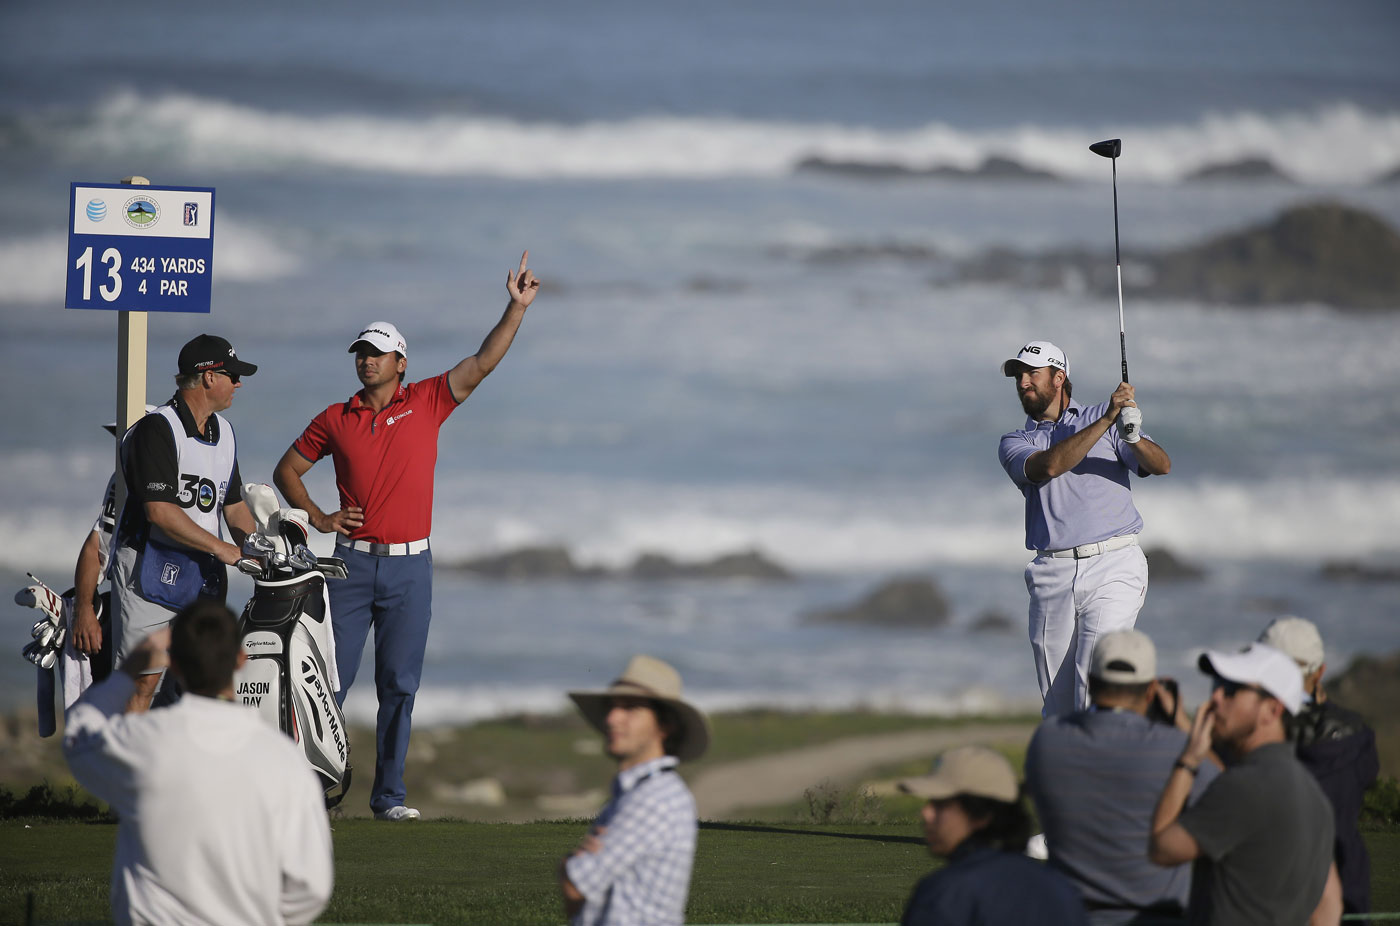 brandt snedeker cruises to record breaking win at pebble beach ap eric risberg